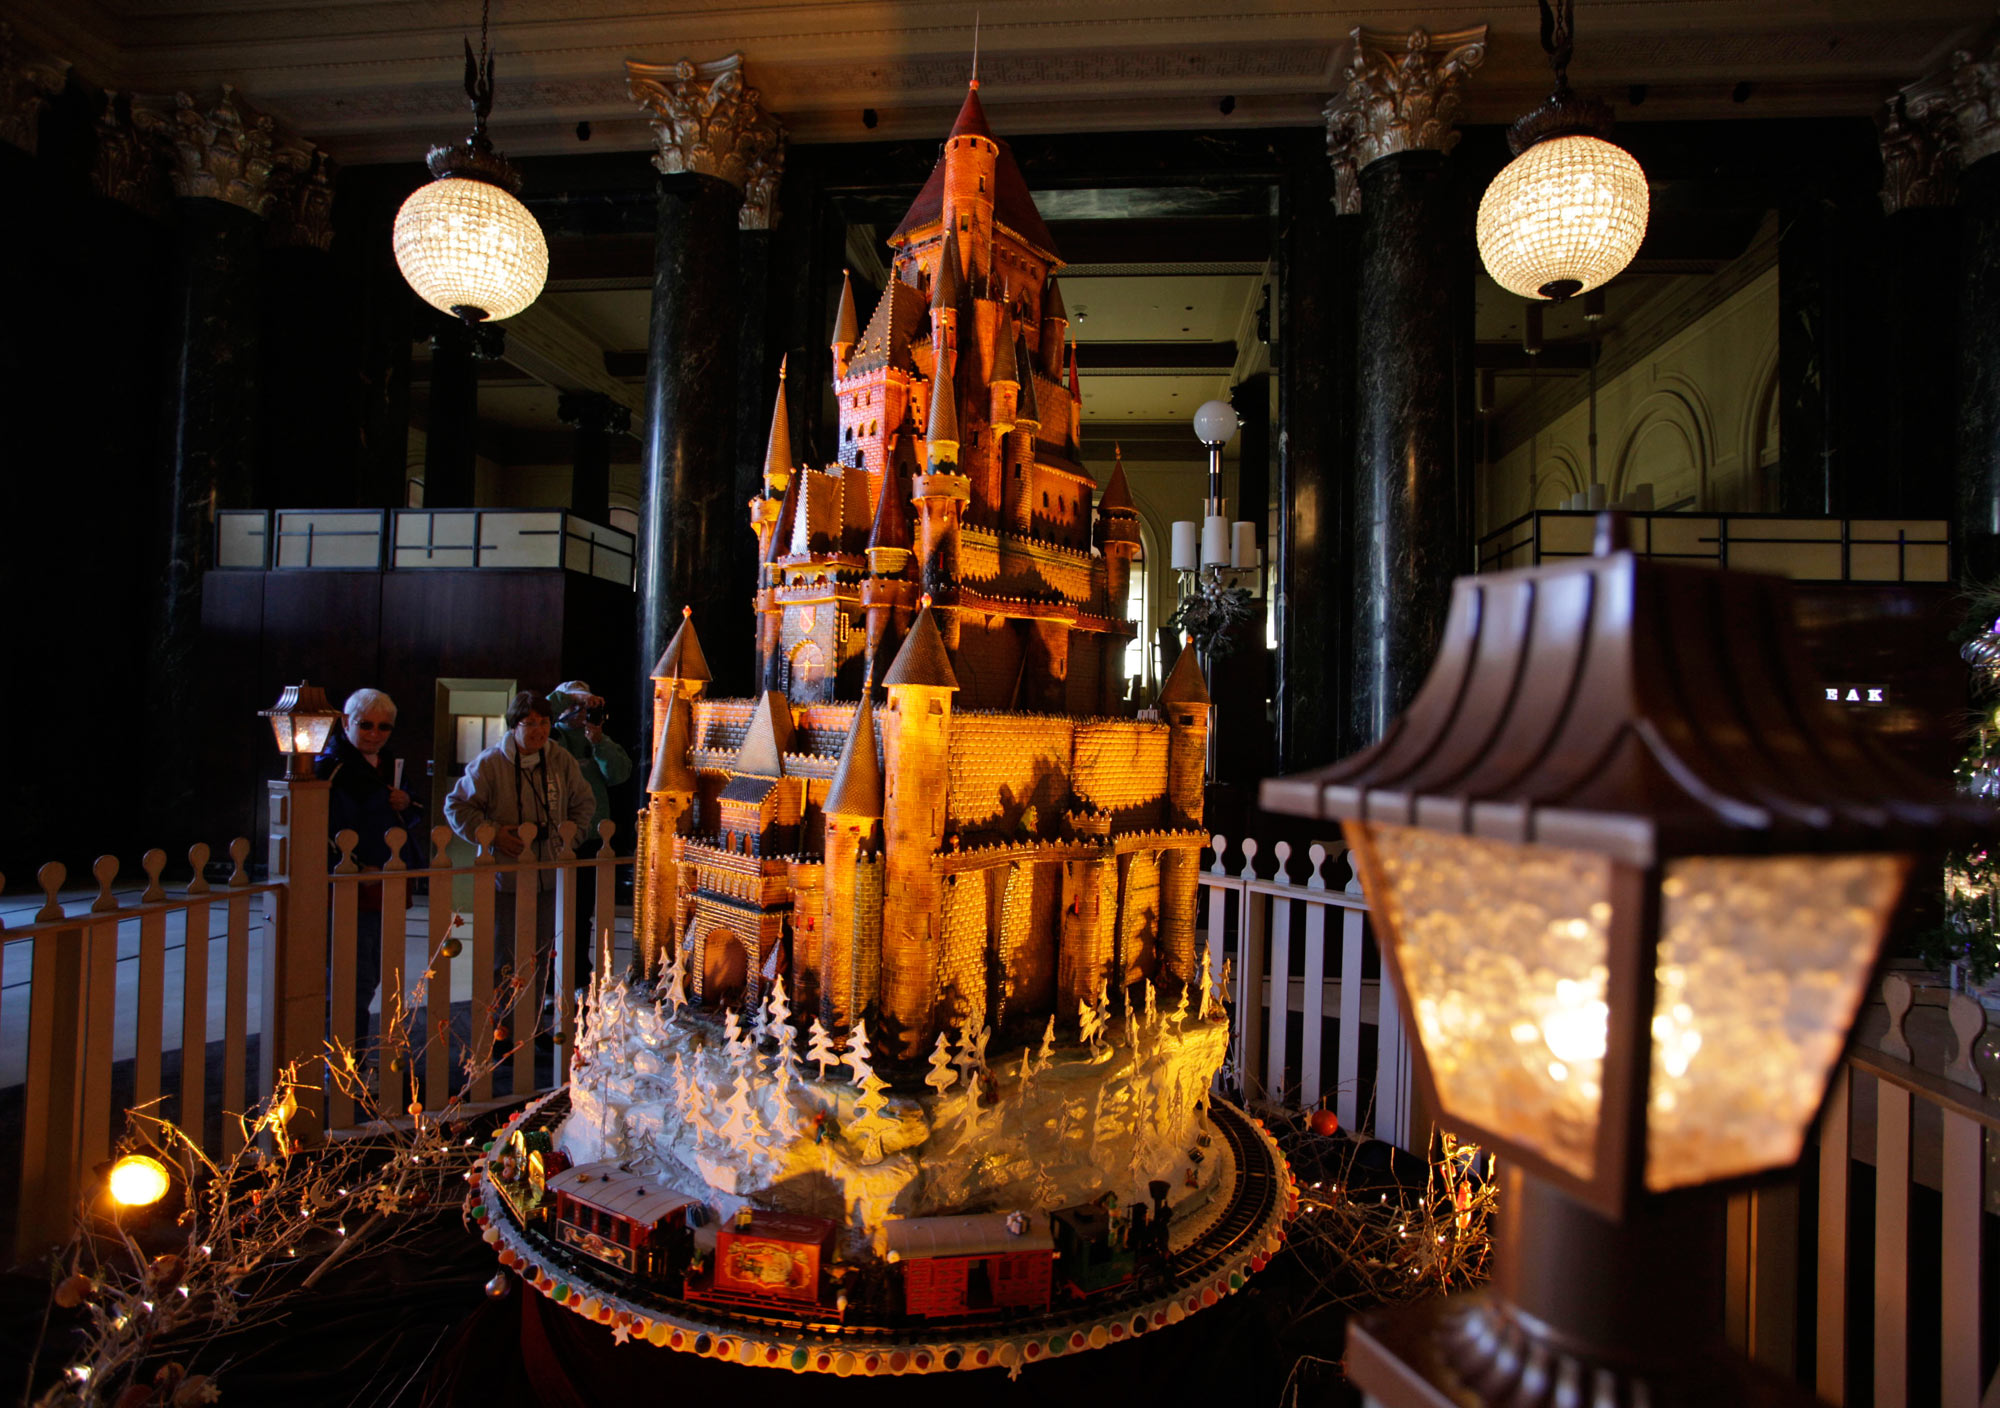 Gingerbread Displays Are Sweet Temptations For Crowds   San Antonio  Express News